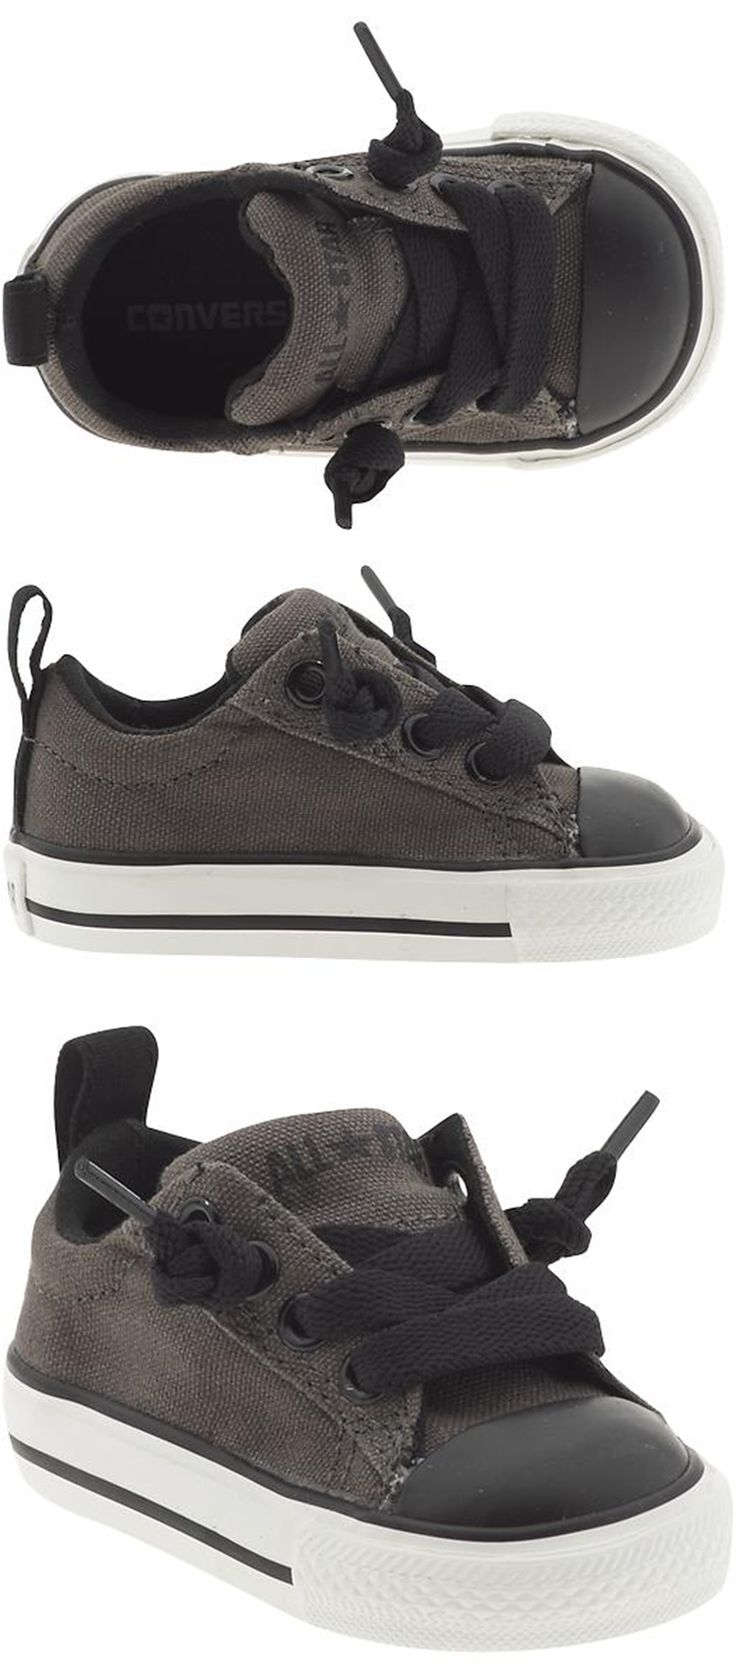 Baby Chuck Taylor All Star Street Ox in Charcoal/Black by Converse